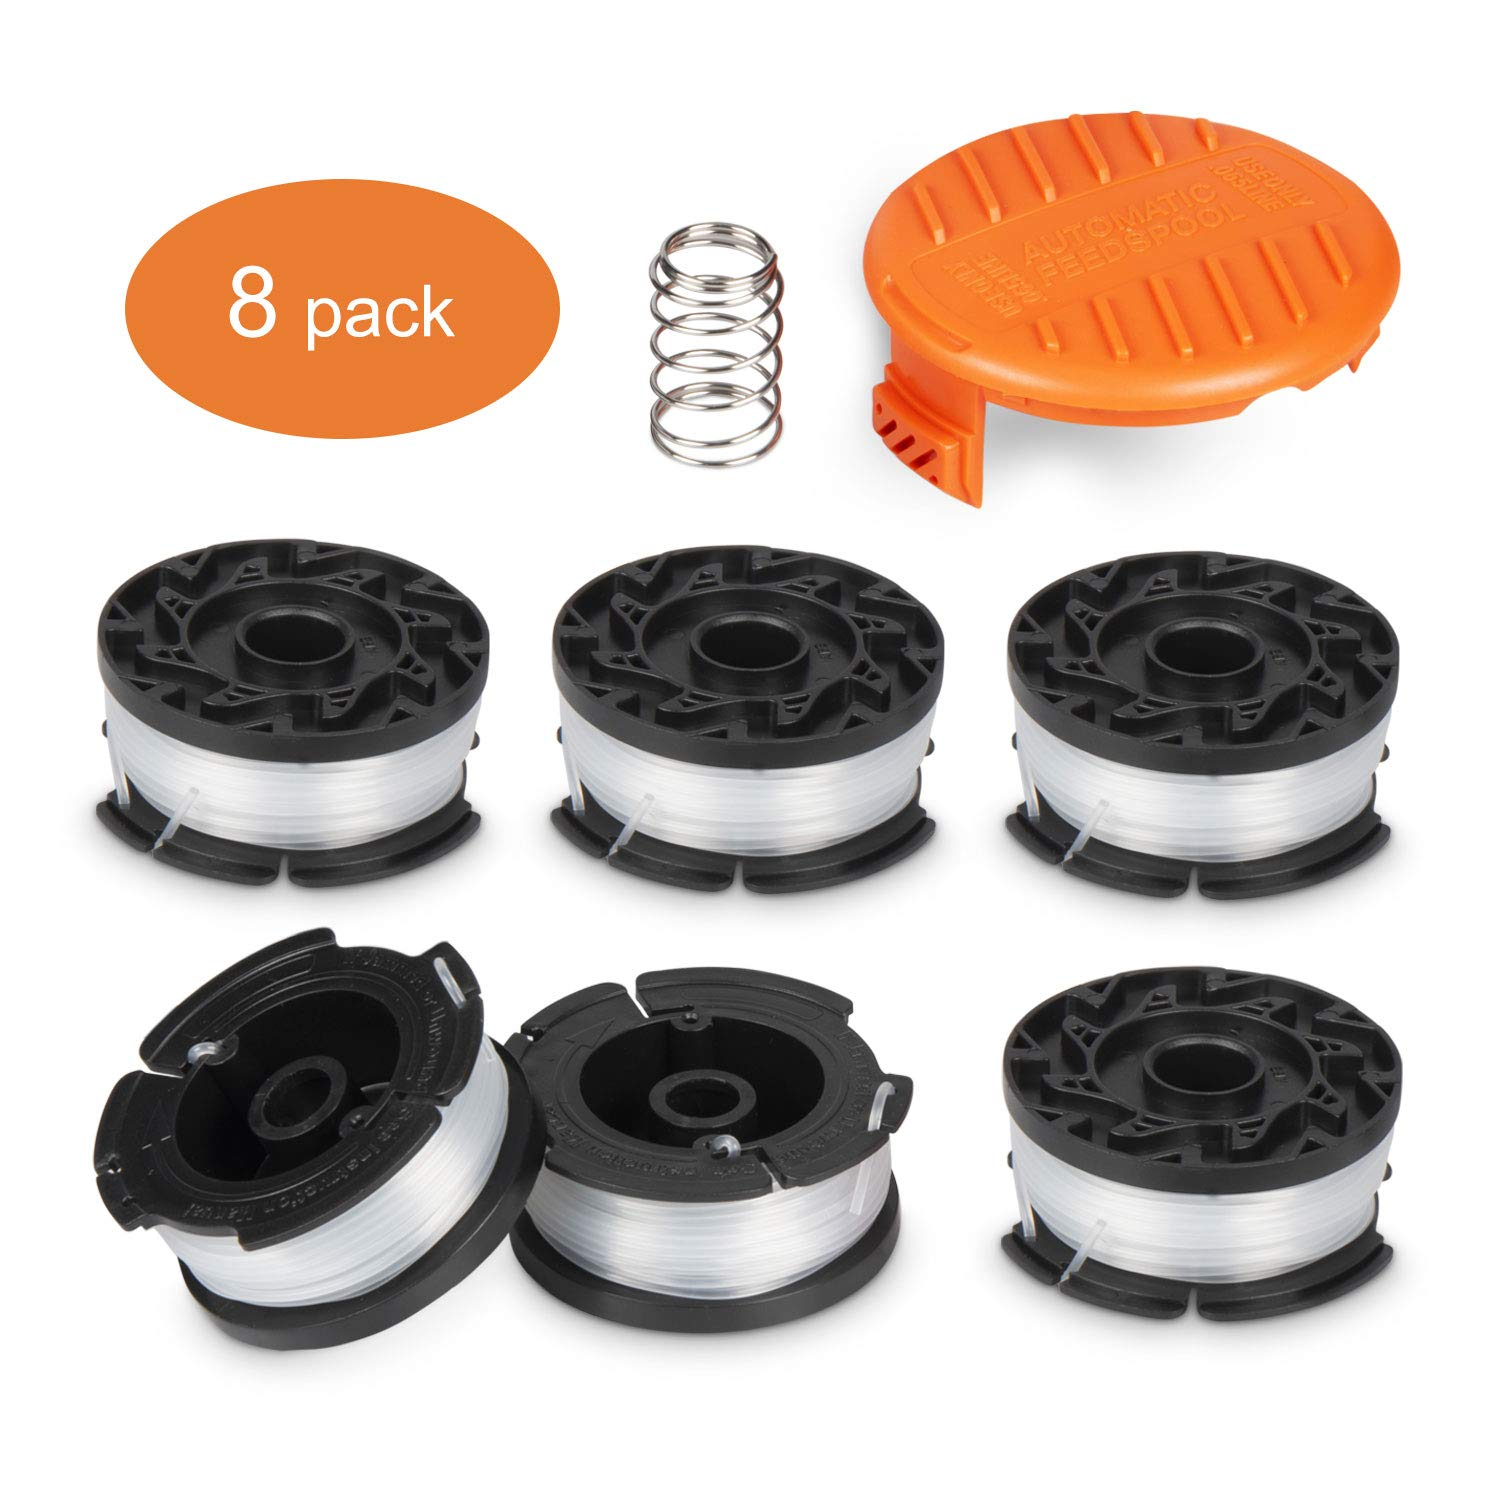 Deyard Trimmer Spool Autofeed System Replacement Durable AF-100 String Trimmer Edger, 30ft 0.065 inch Line String Trimmer (6 Replacement Spool, 1 Spool Cap, 1 Spring)